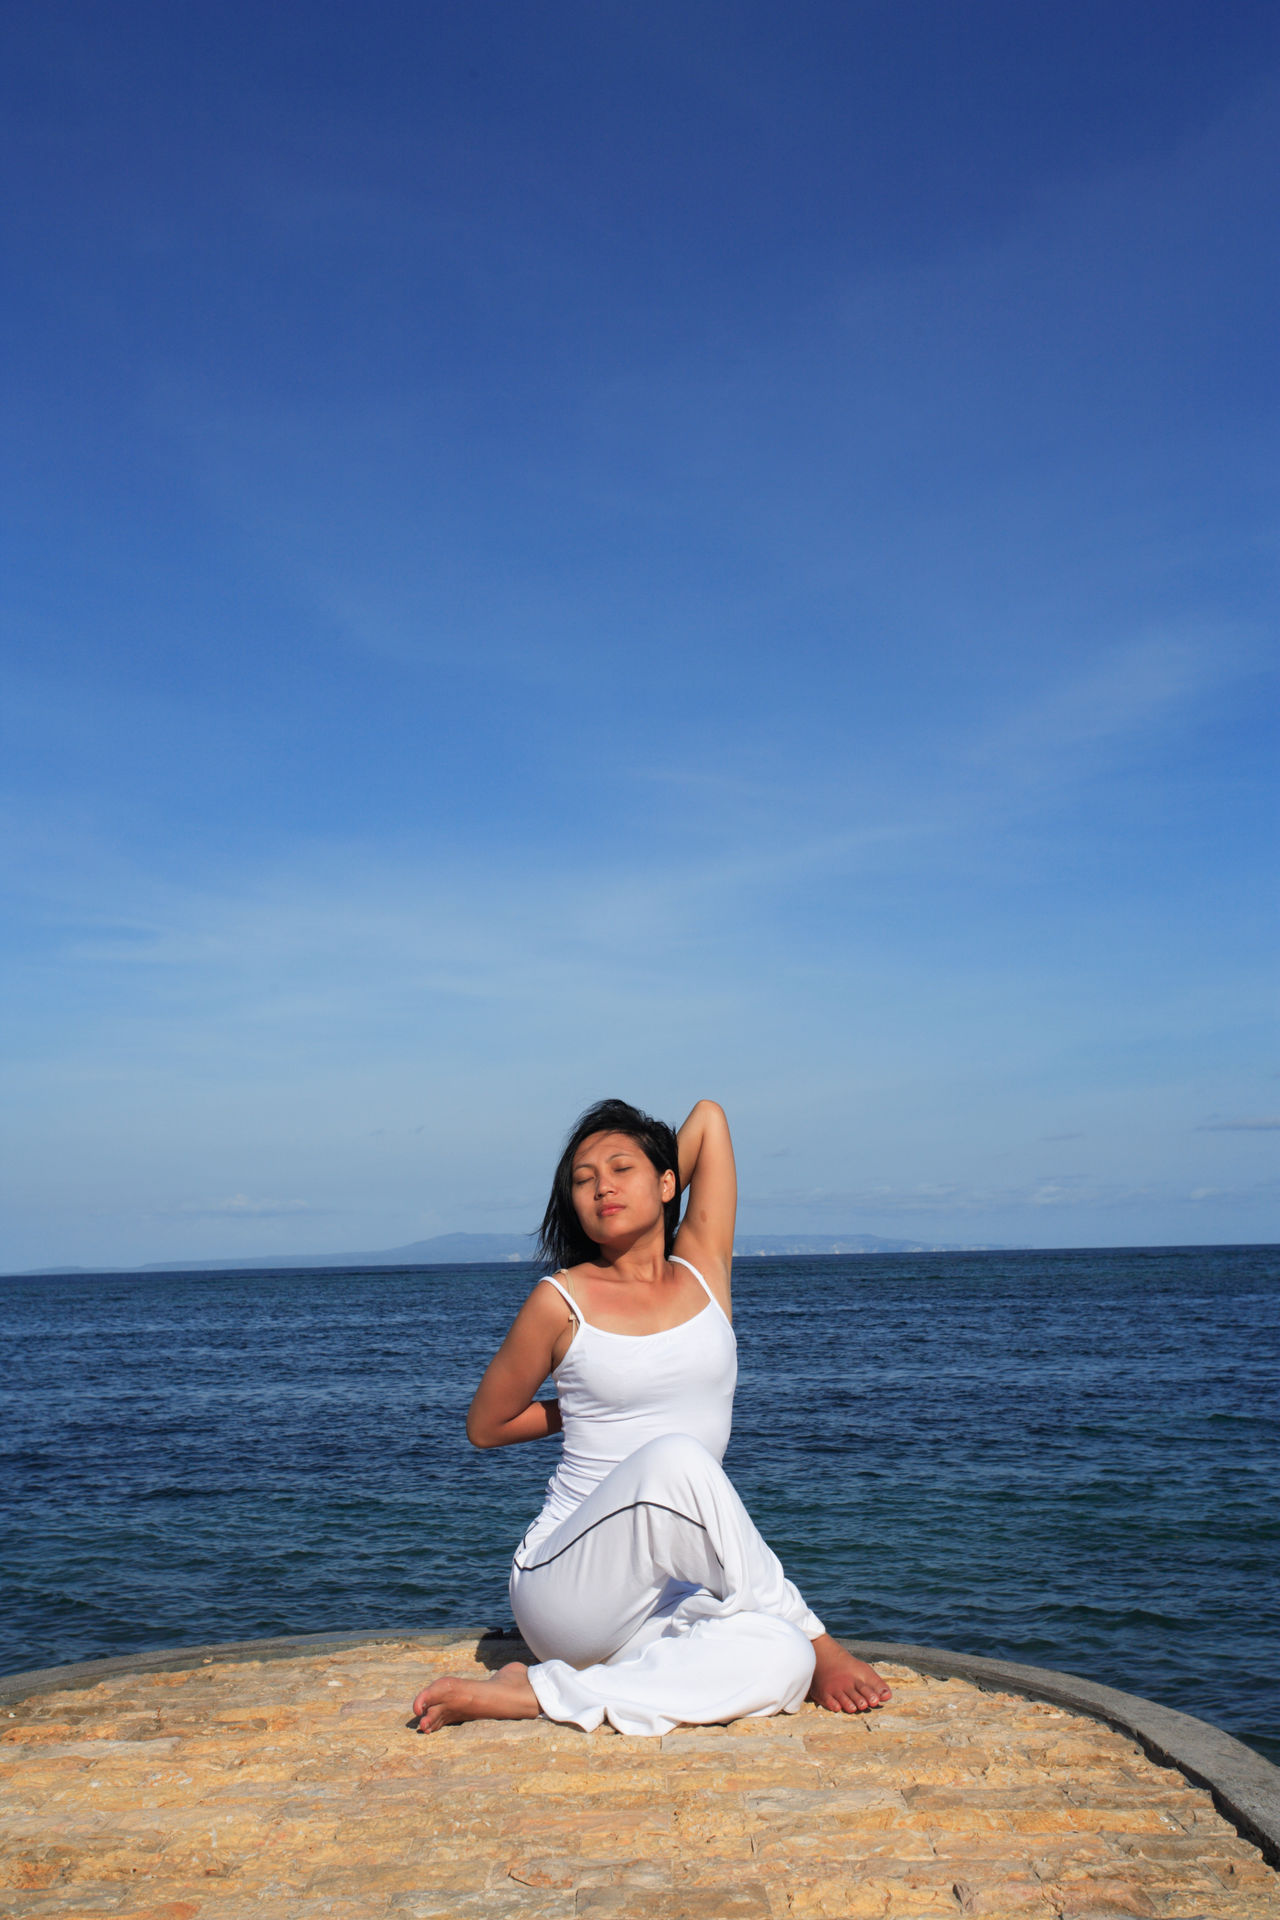 Adult Adults Only Beach Blue Females Full Length Horizon Over Water Human Body Part Lifestyles One Person One Woman Only Only Women Outdoors People Relaxation Relaxation Exercise Sand Sea Serene People Sitting Sky Summer Vacations Women Yoga